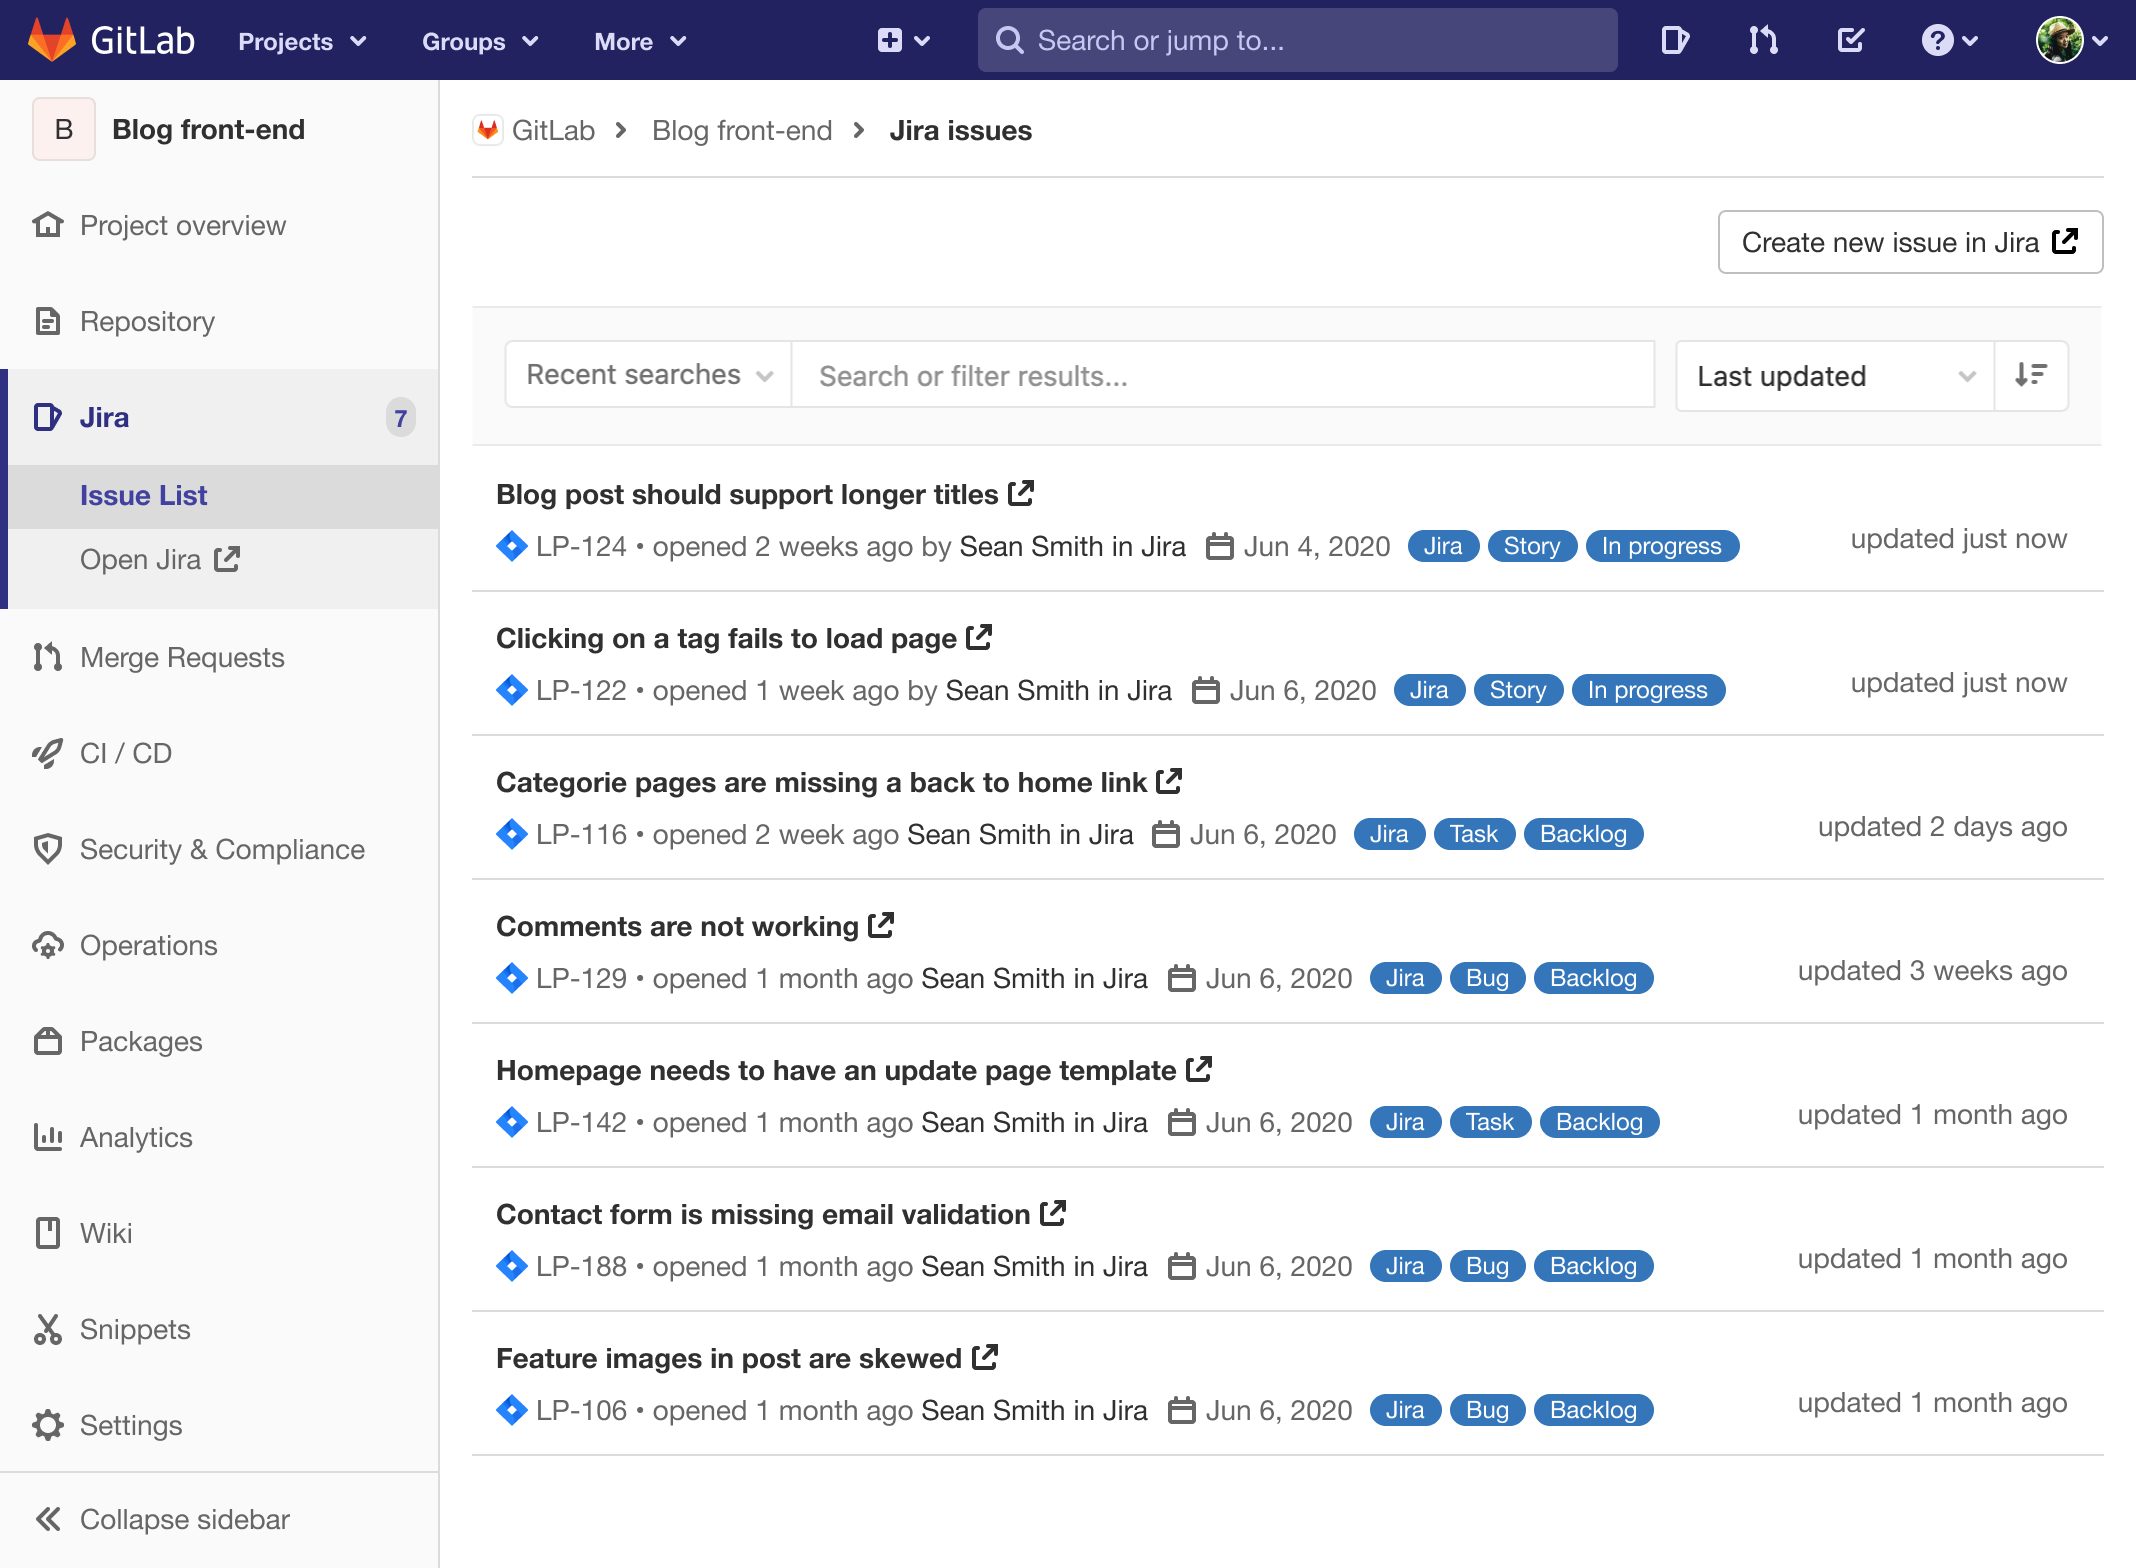 View Jira issue list in GitLab